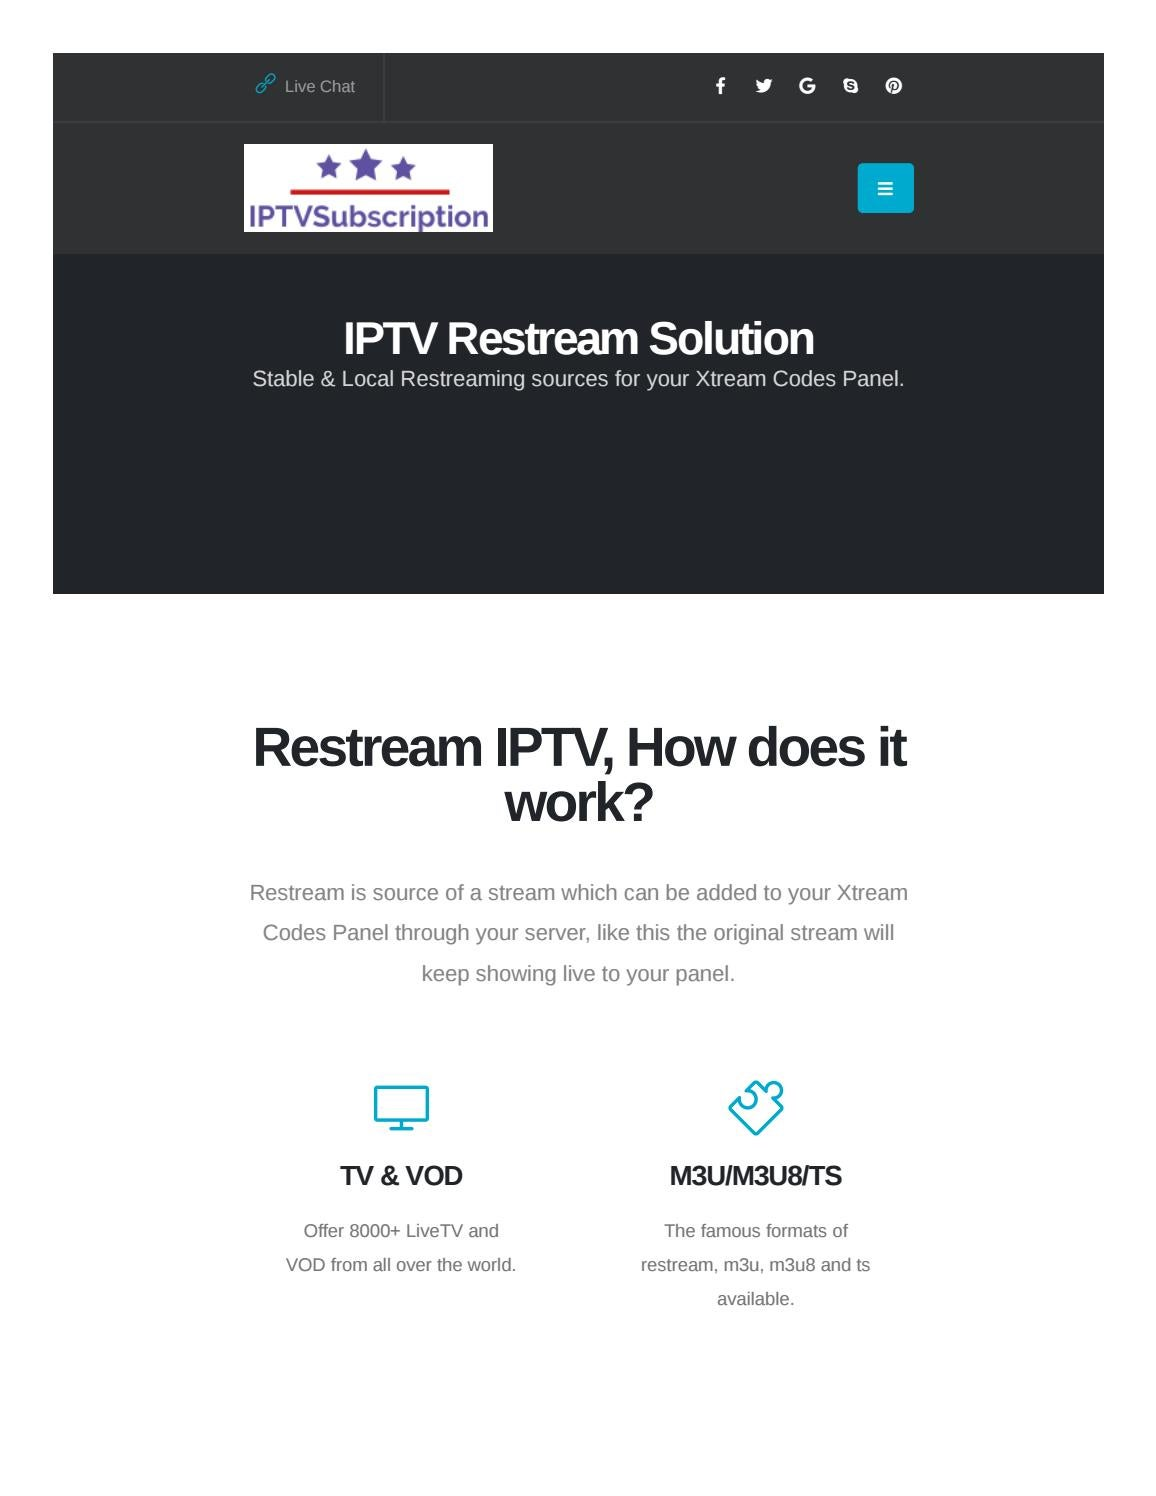 IPTV Restream Solution | Local IPTV Restreaming Sources by